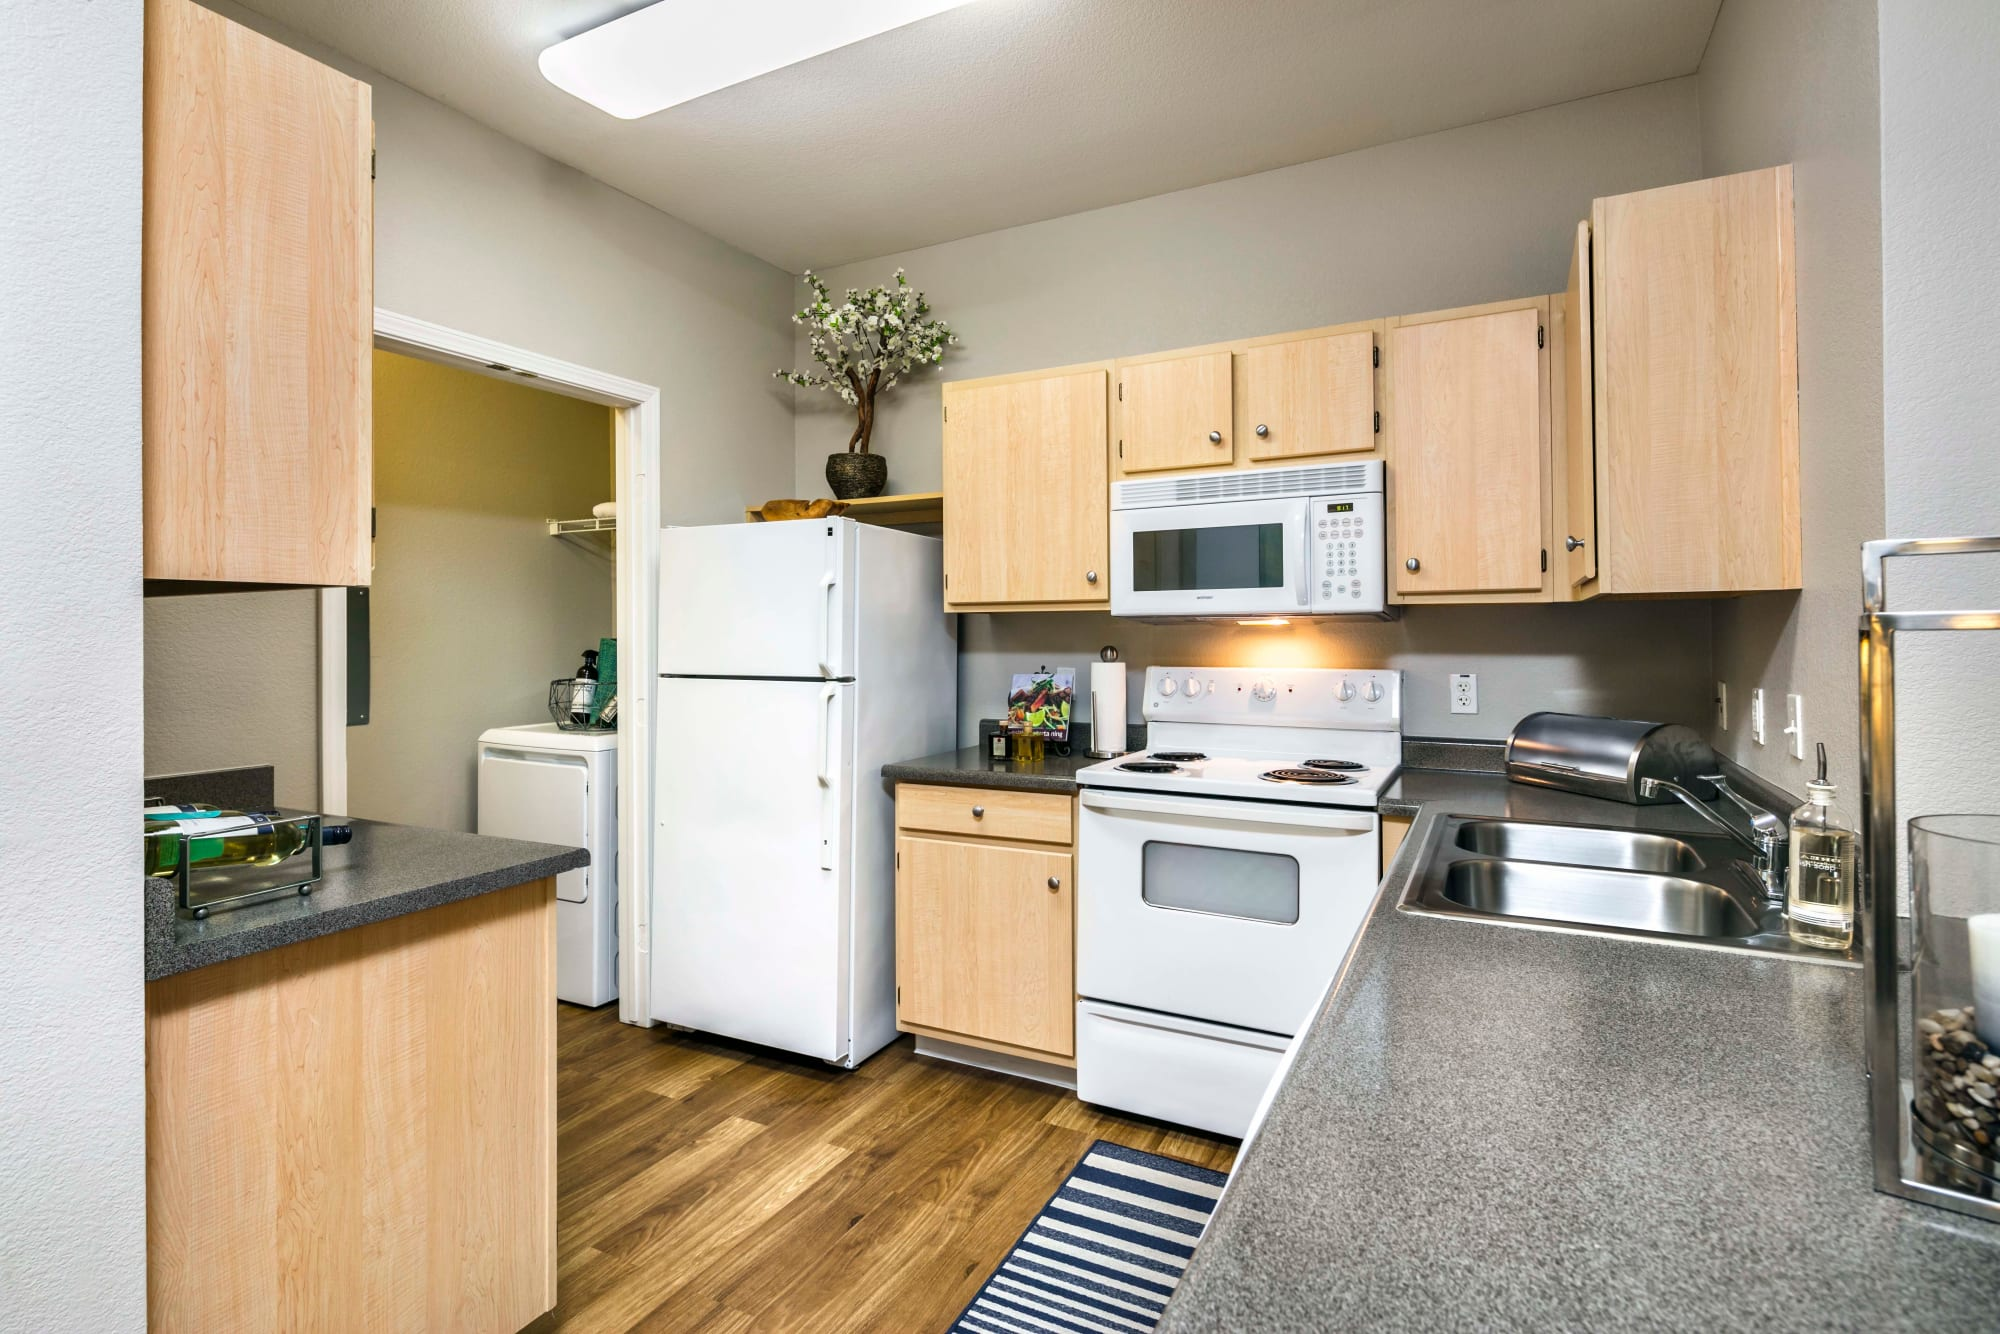 A large kitchen with all the amenities at Miramonte and Trovas in Sacramento, California